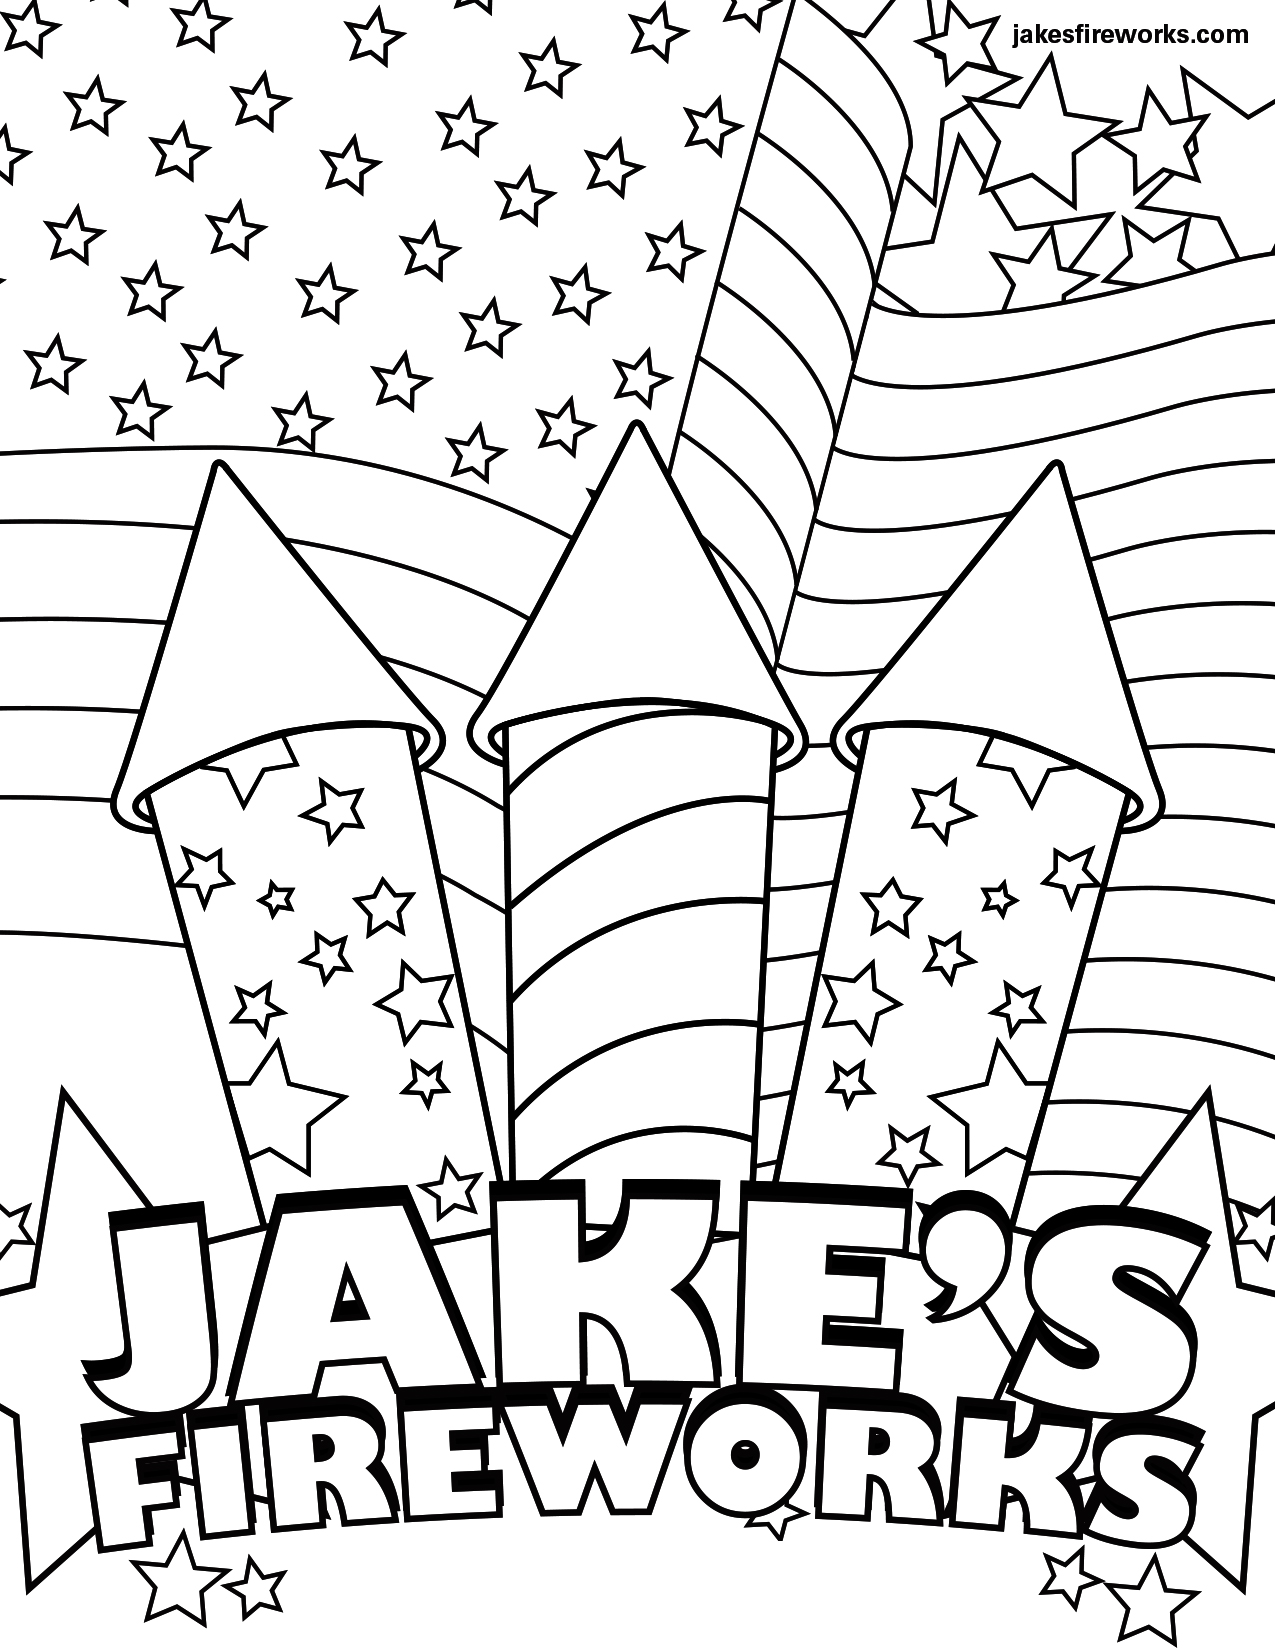 2014 firework coloring pages free printable fireworks coloring pages